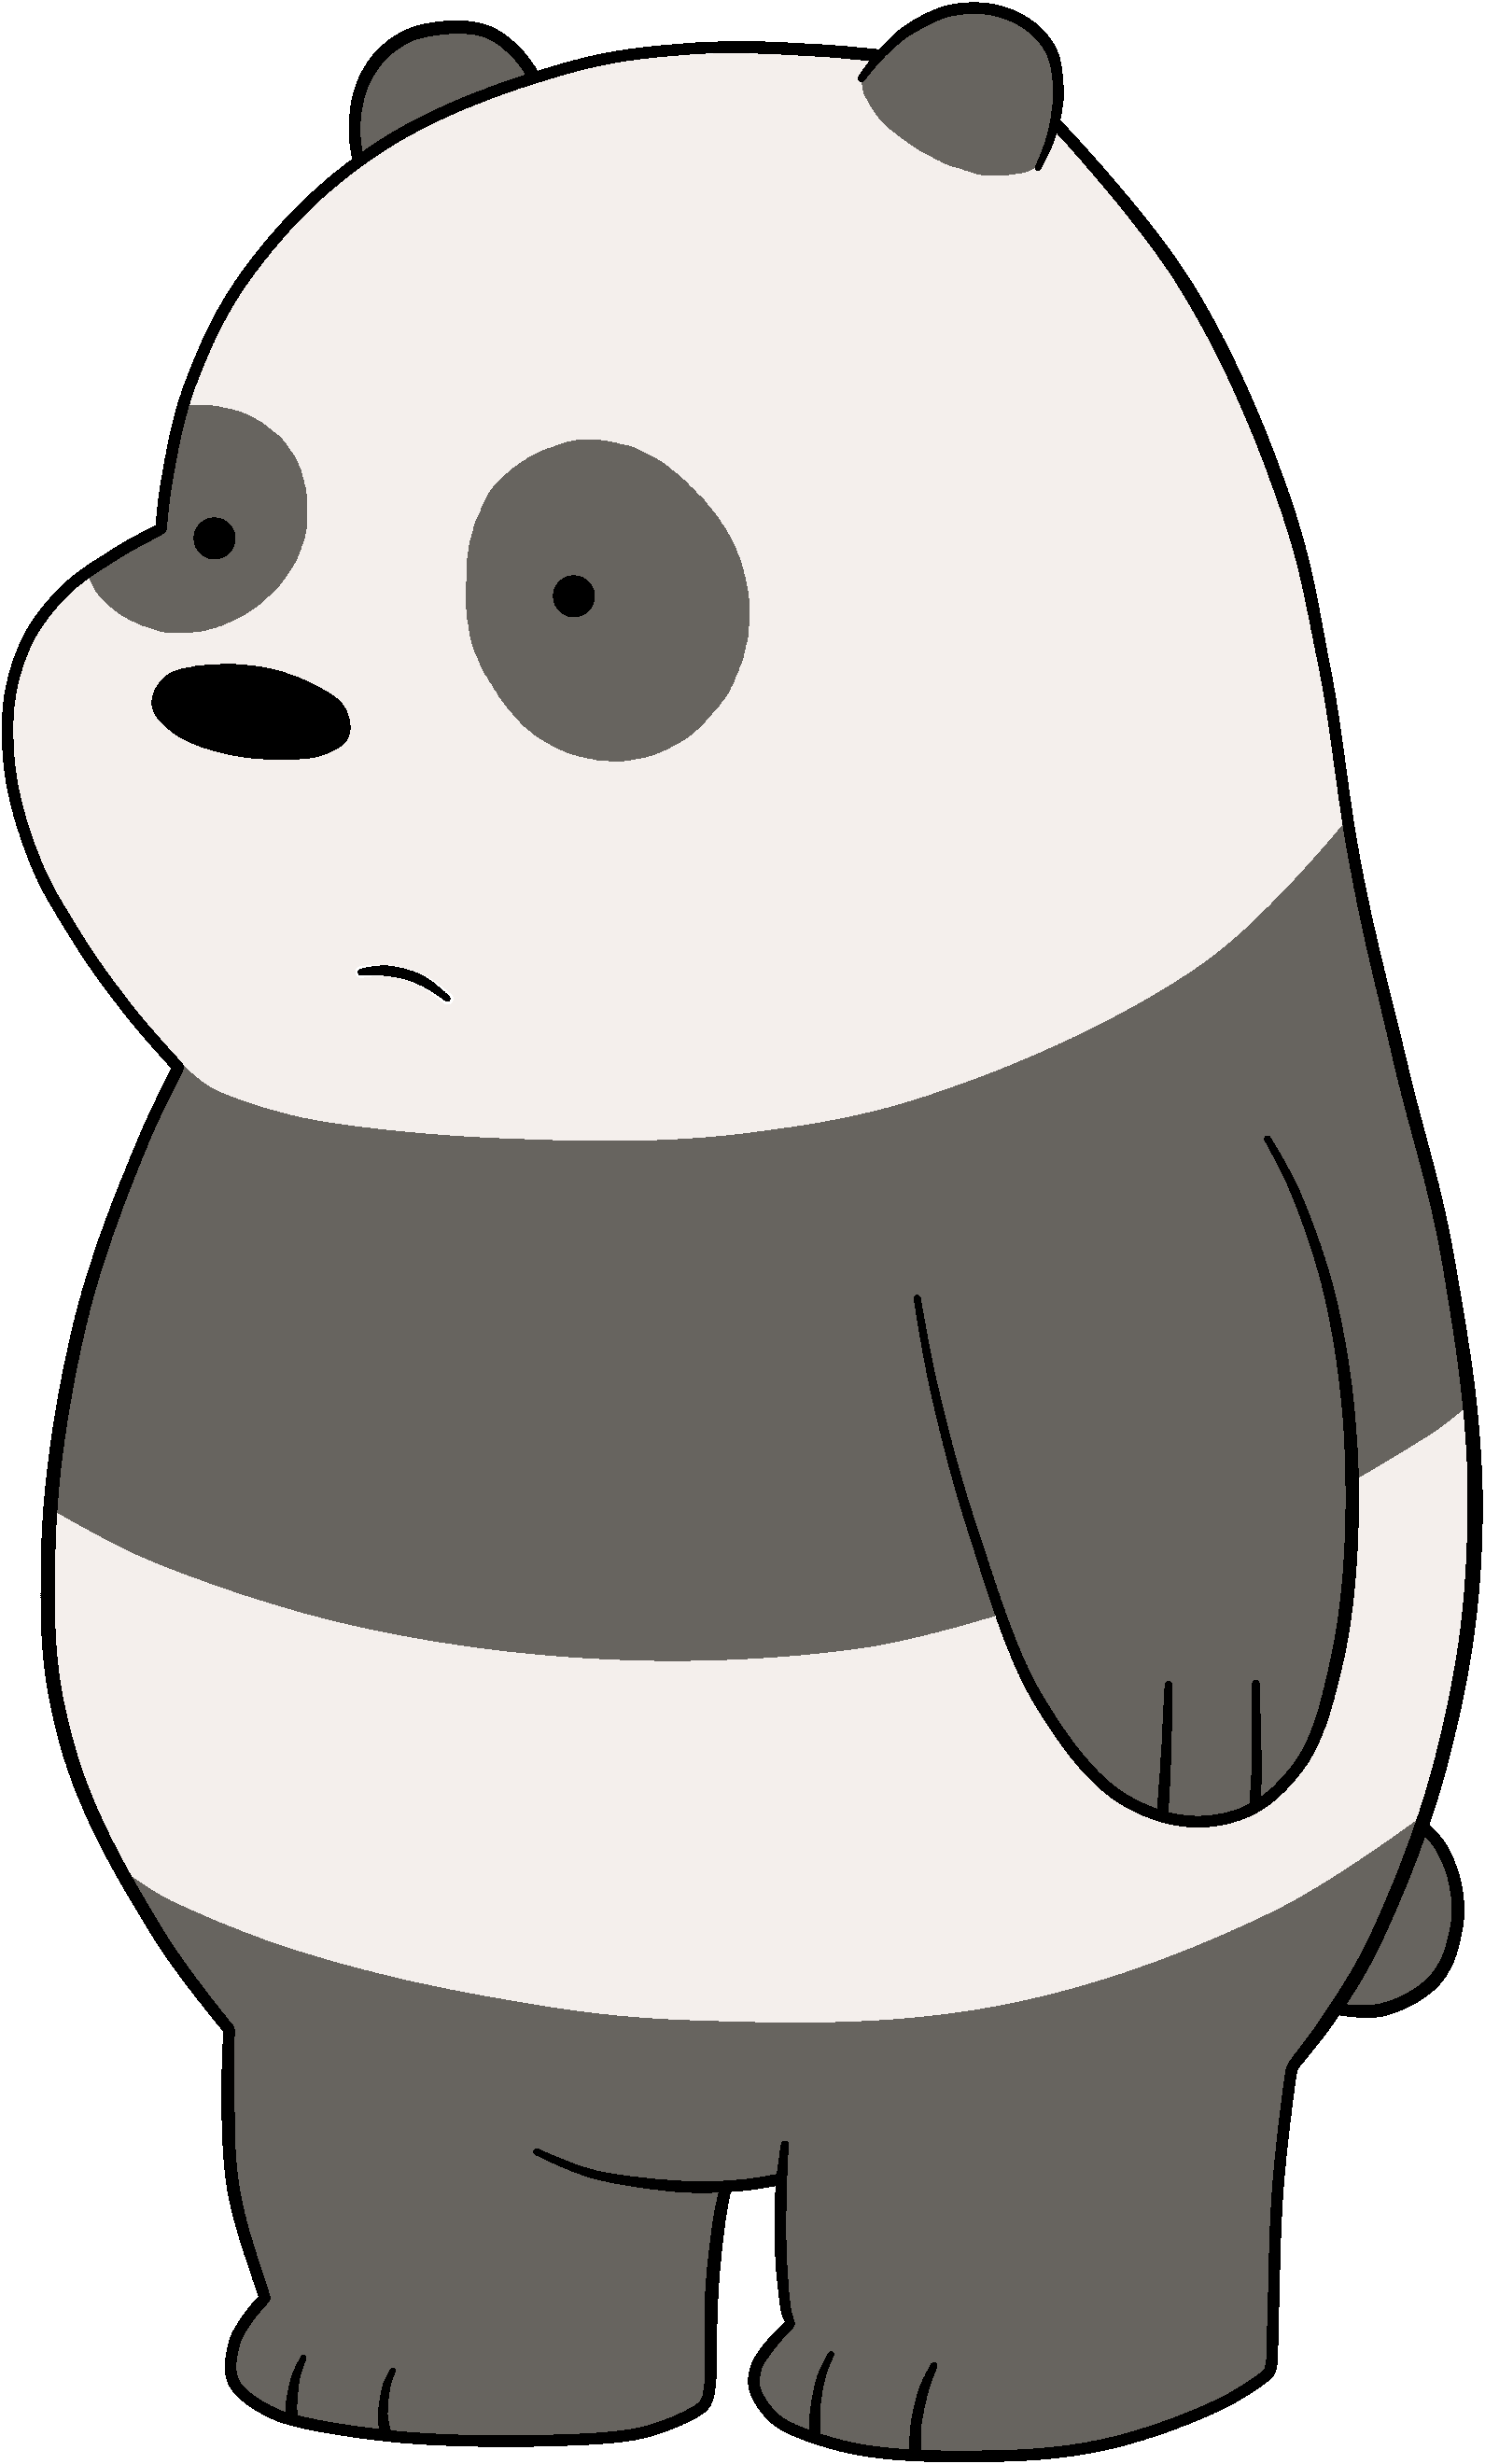 picture Drawing bears panda. Latest animation characters pinterest